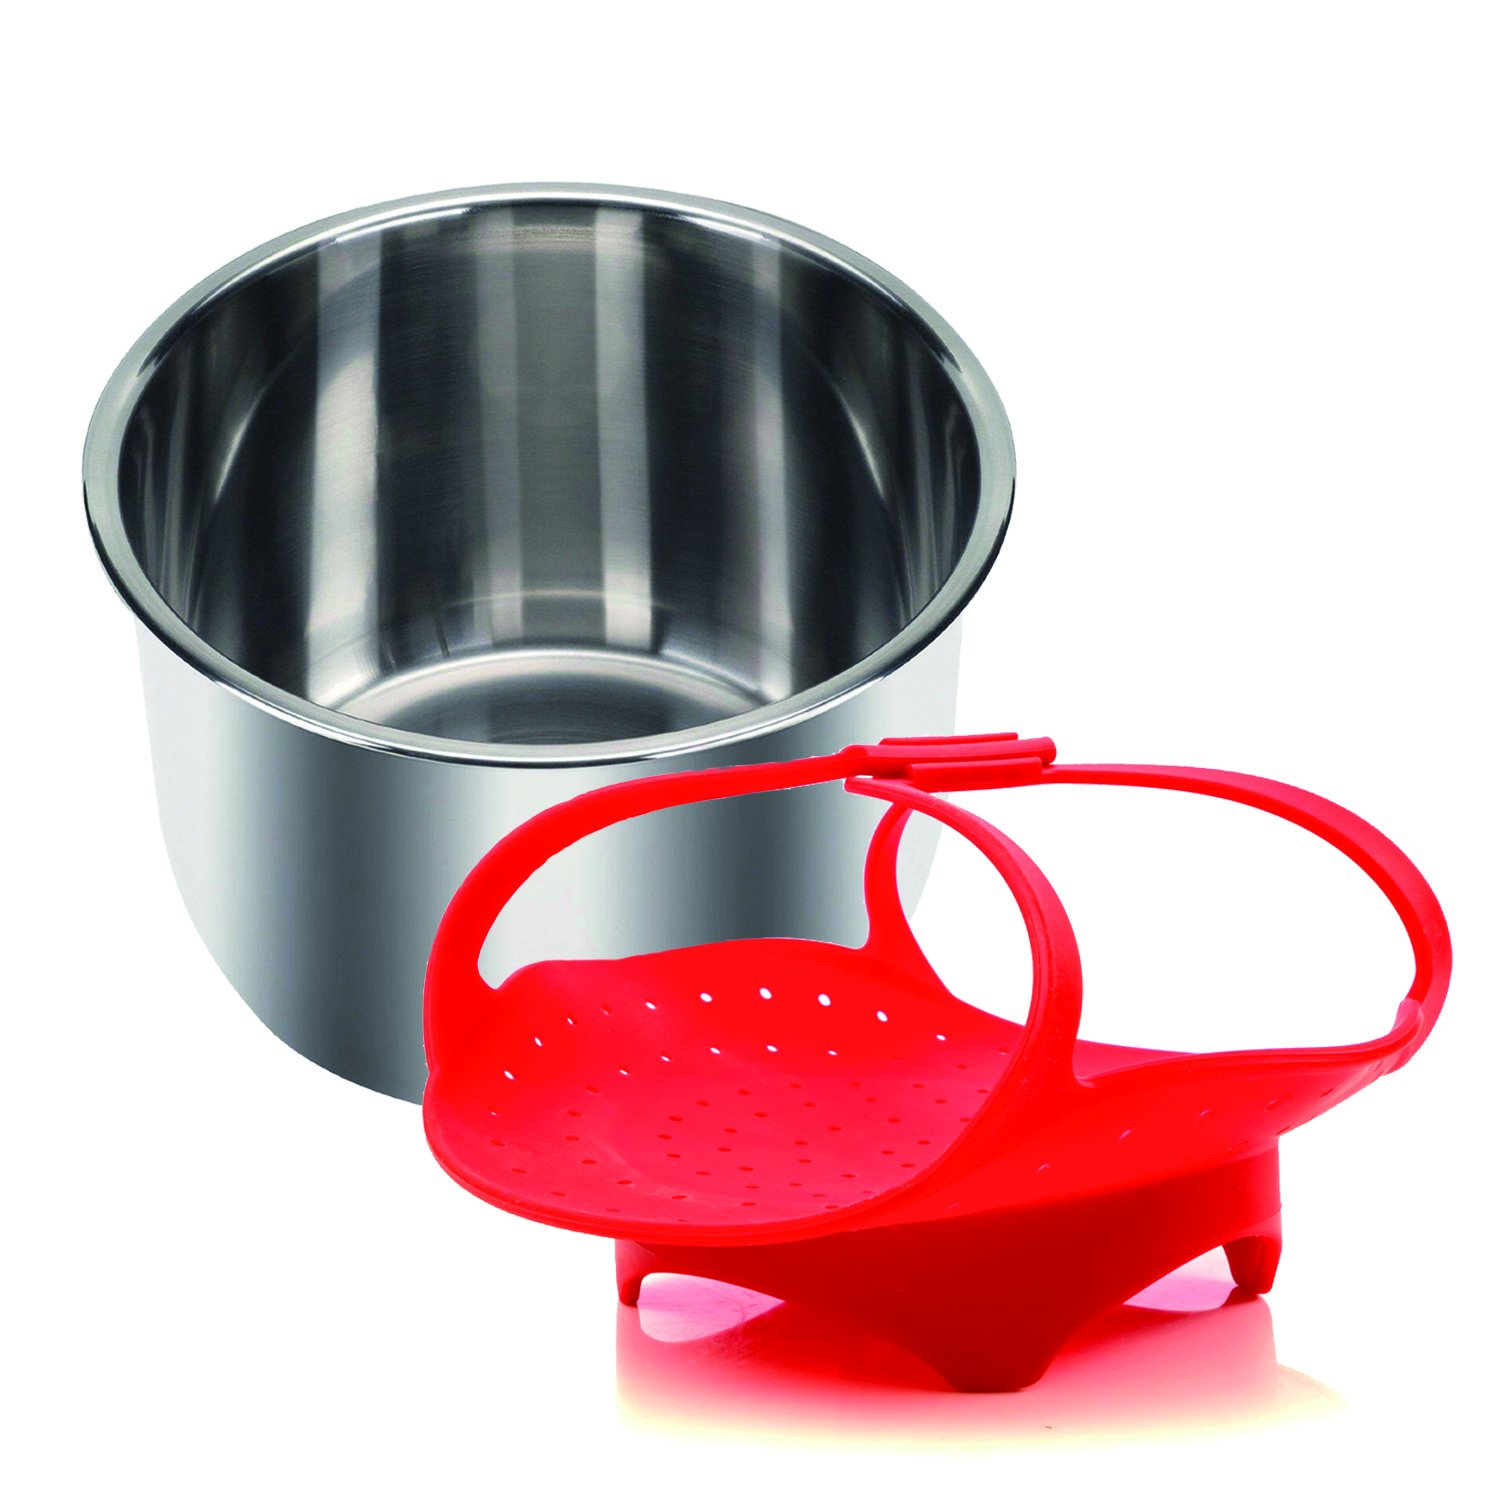 Insta Pot/IP-Compatible Silicone Steamer Basket (BPA-Free) - Fits All Instapot Models